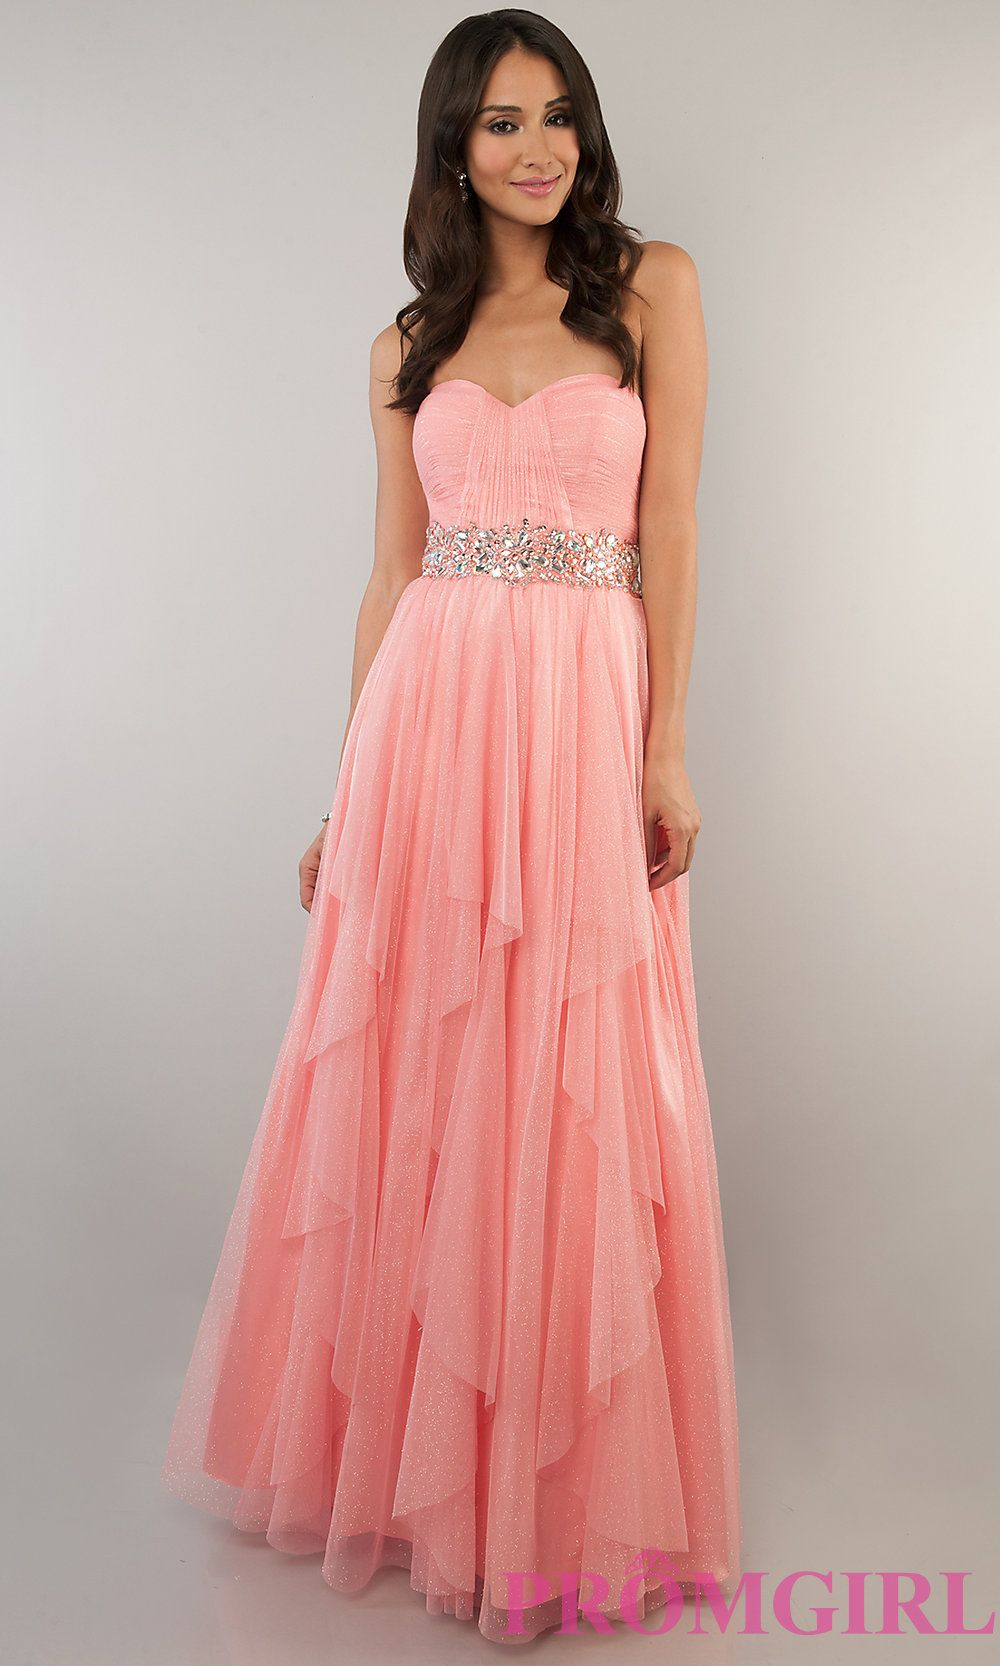 Wedding Pink Dresses coral pink prom gown strapless dresses bee darlin promgirl promgirl